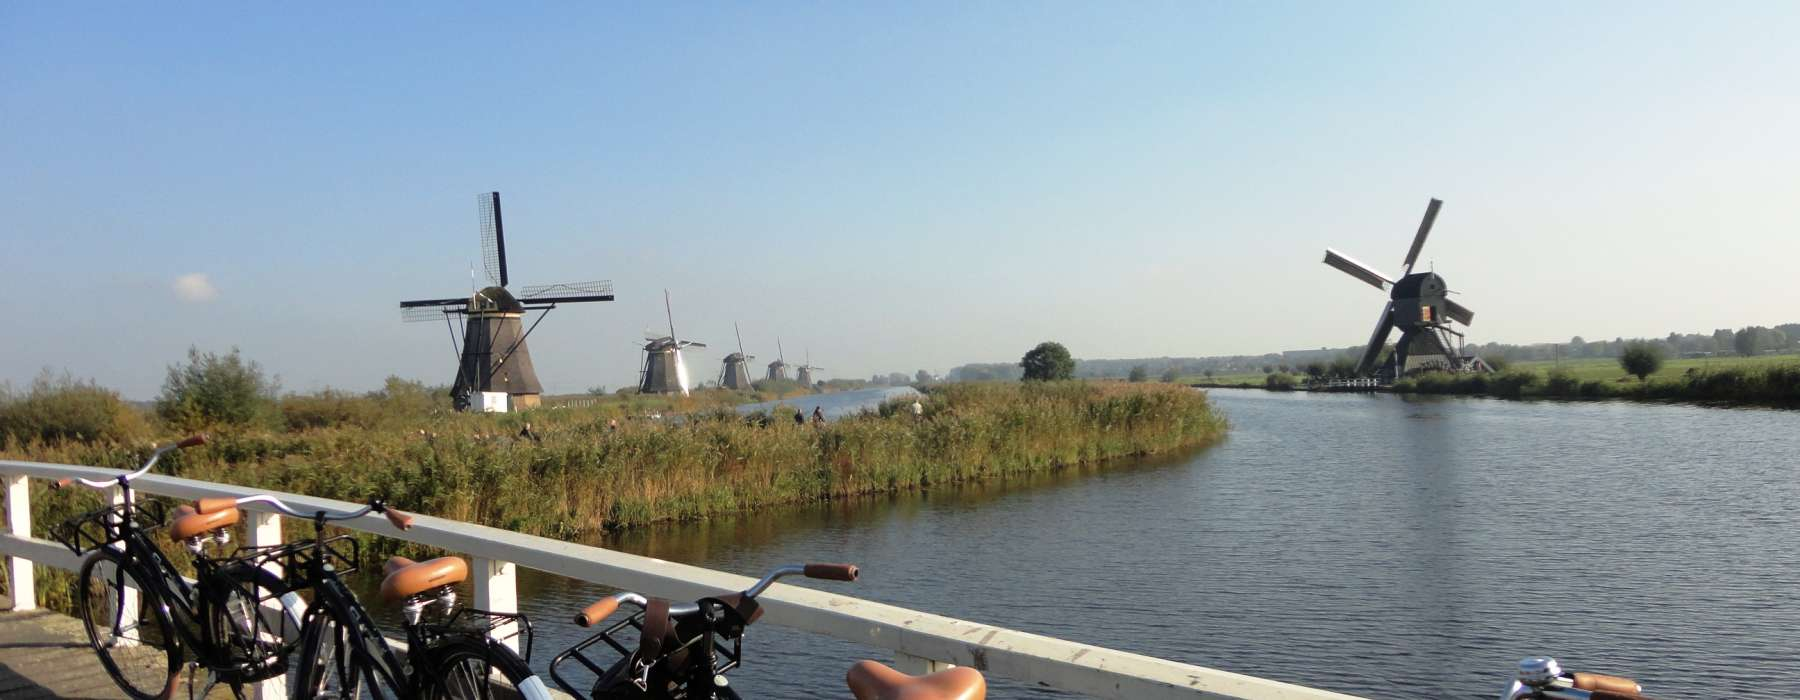 Cycle to Kinderdijk - Green Cow Bike Tours